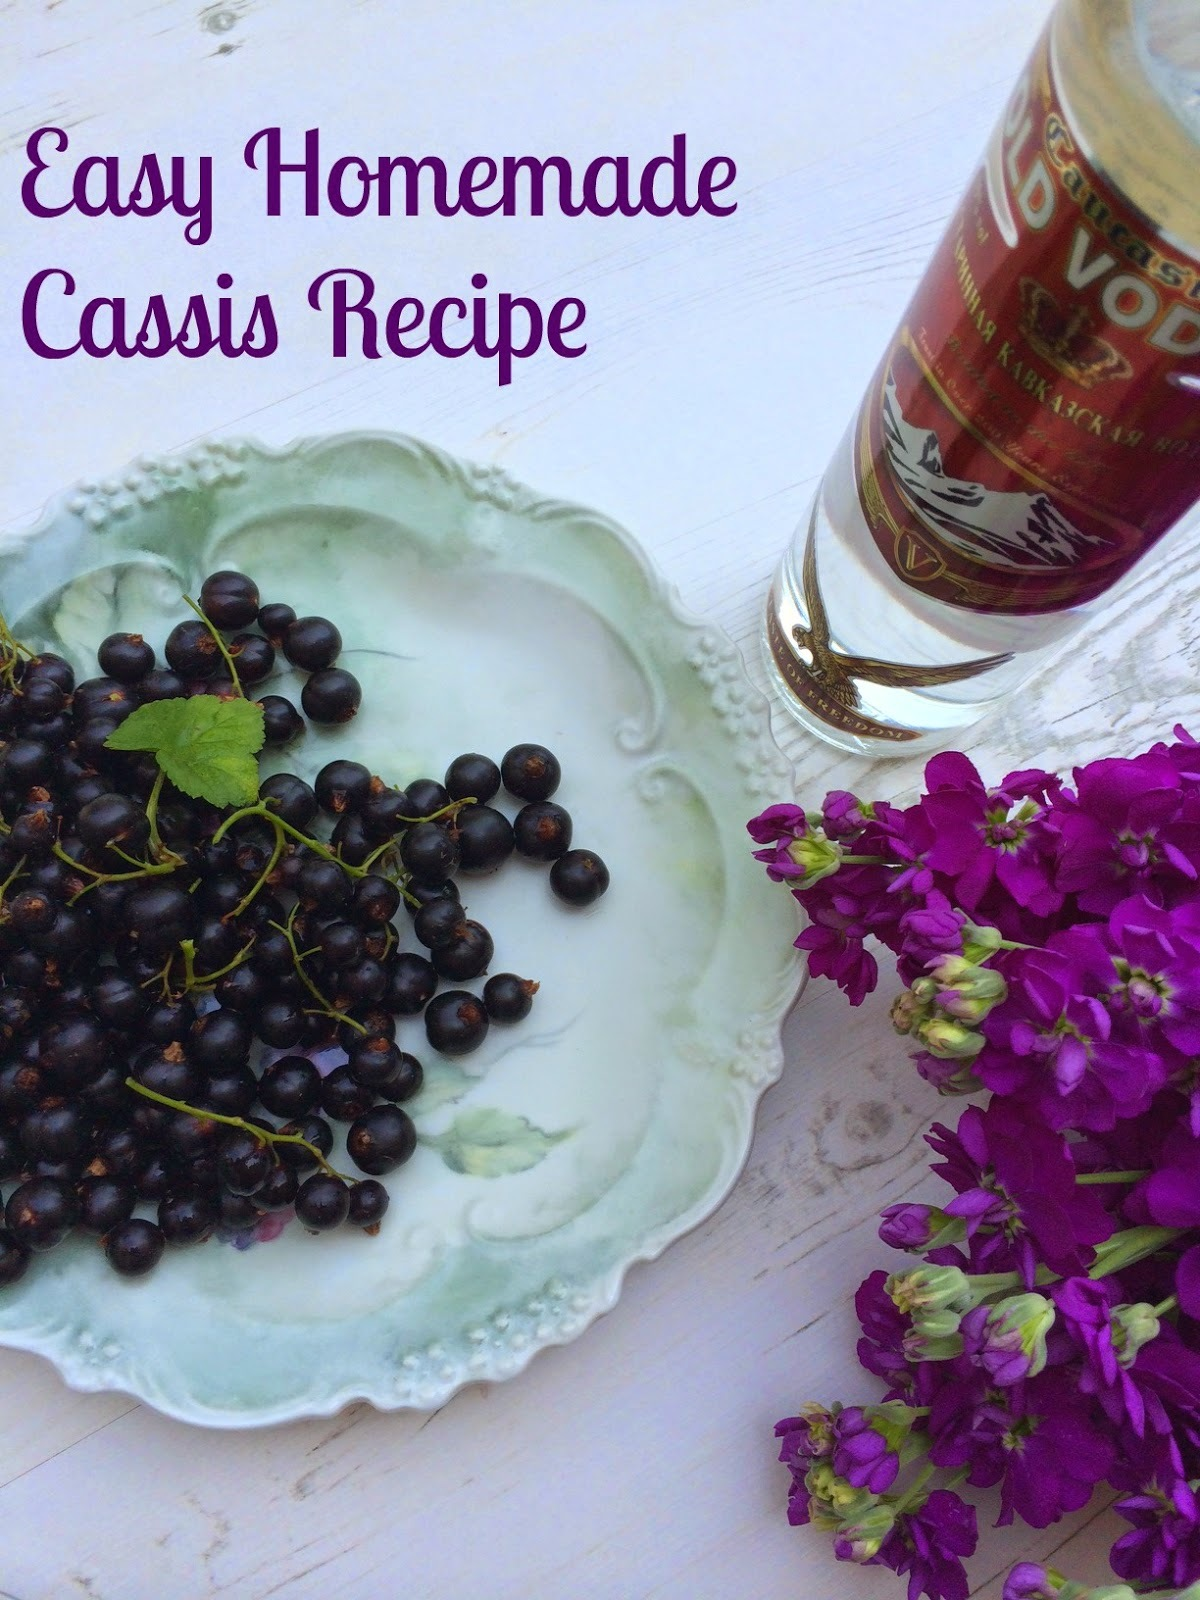 How to Make: Homemade Cassis